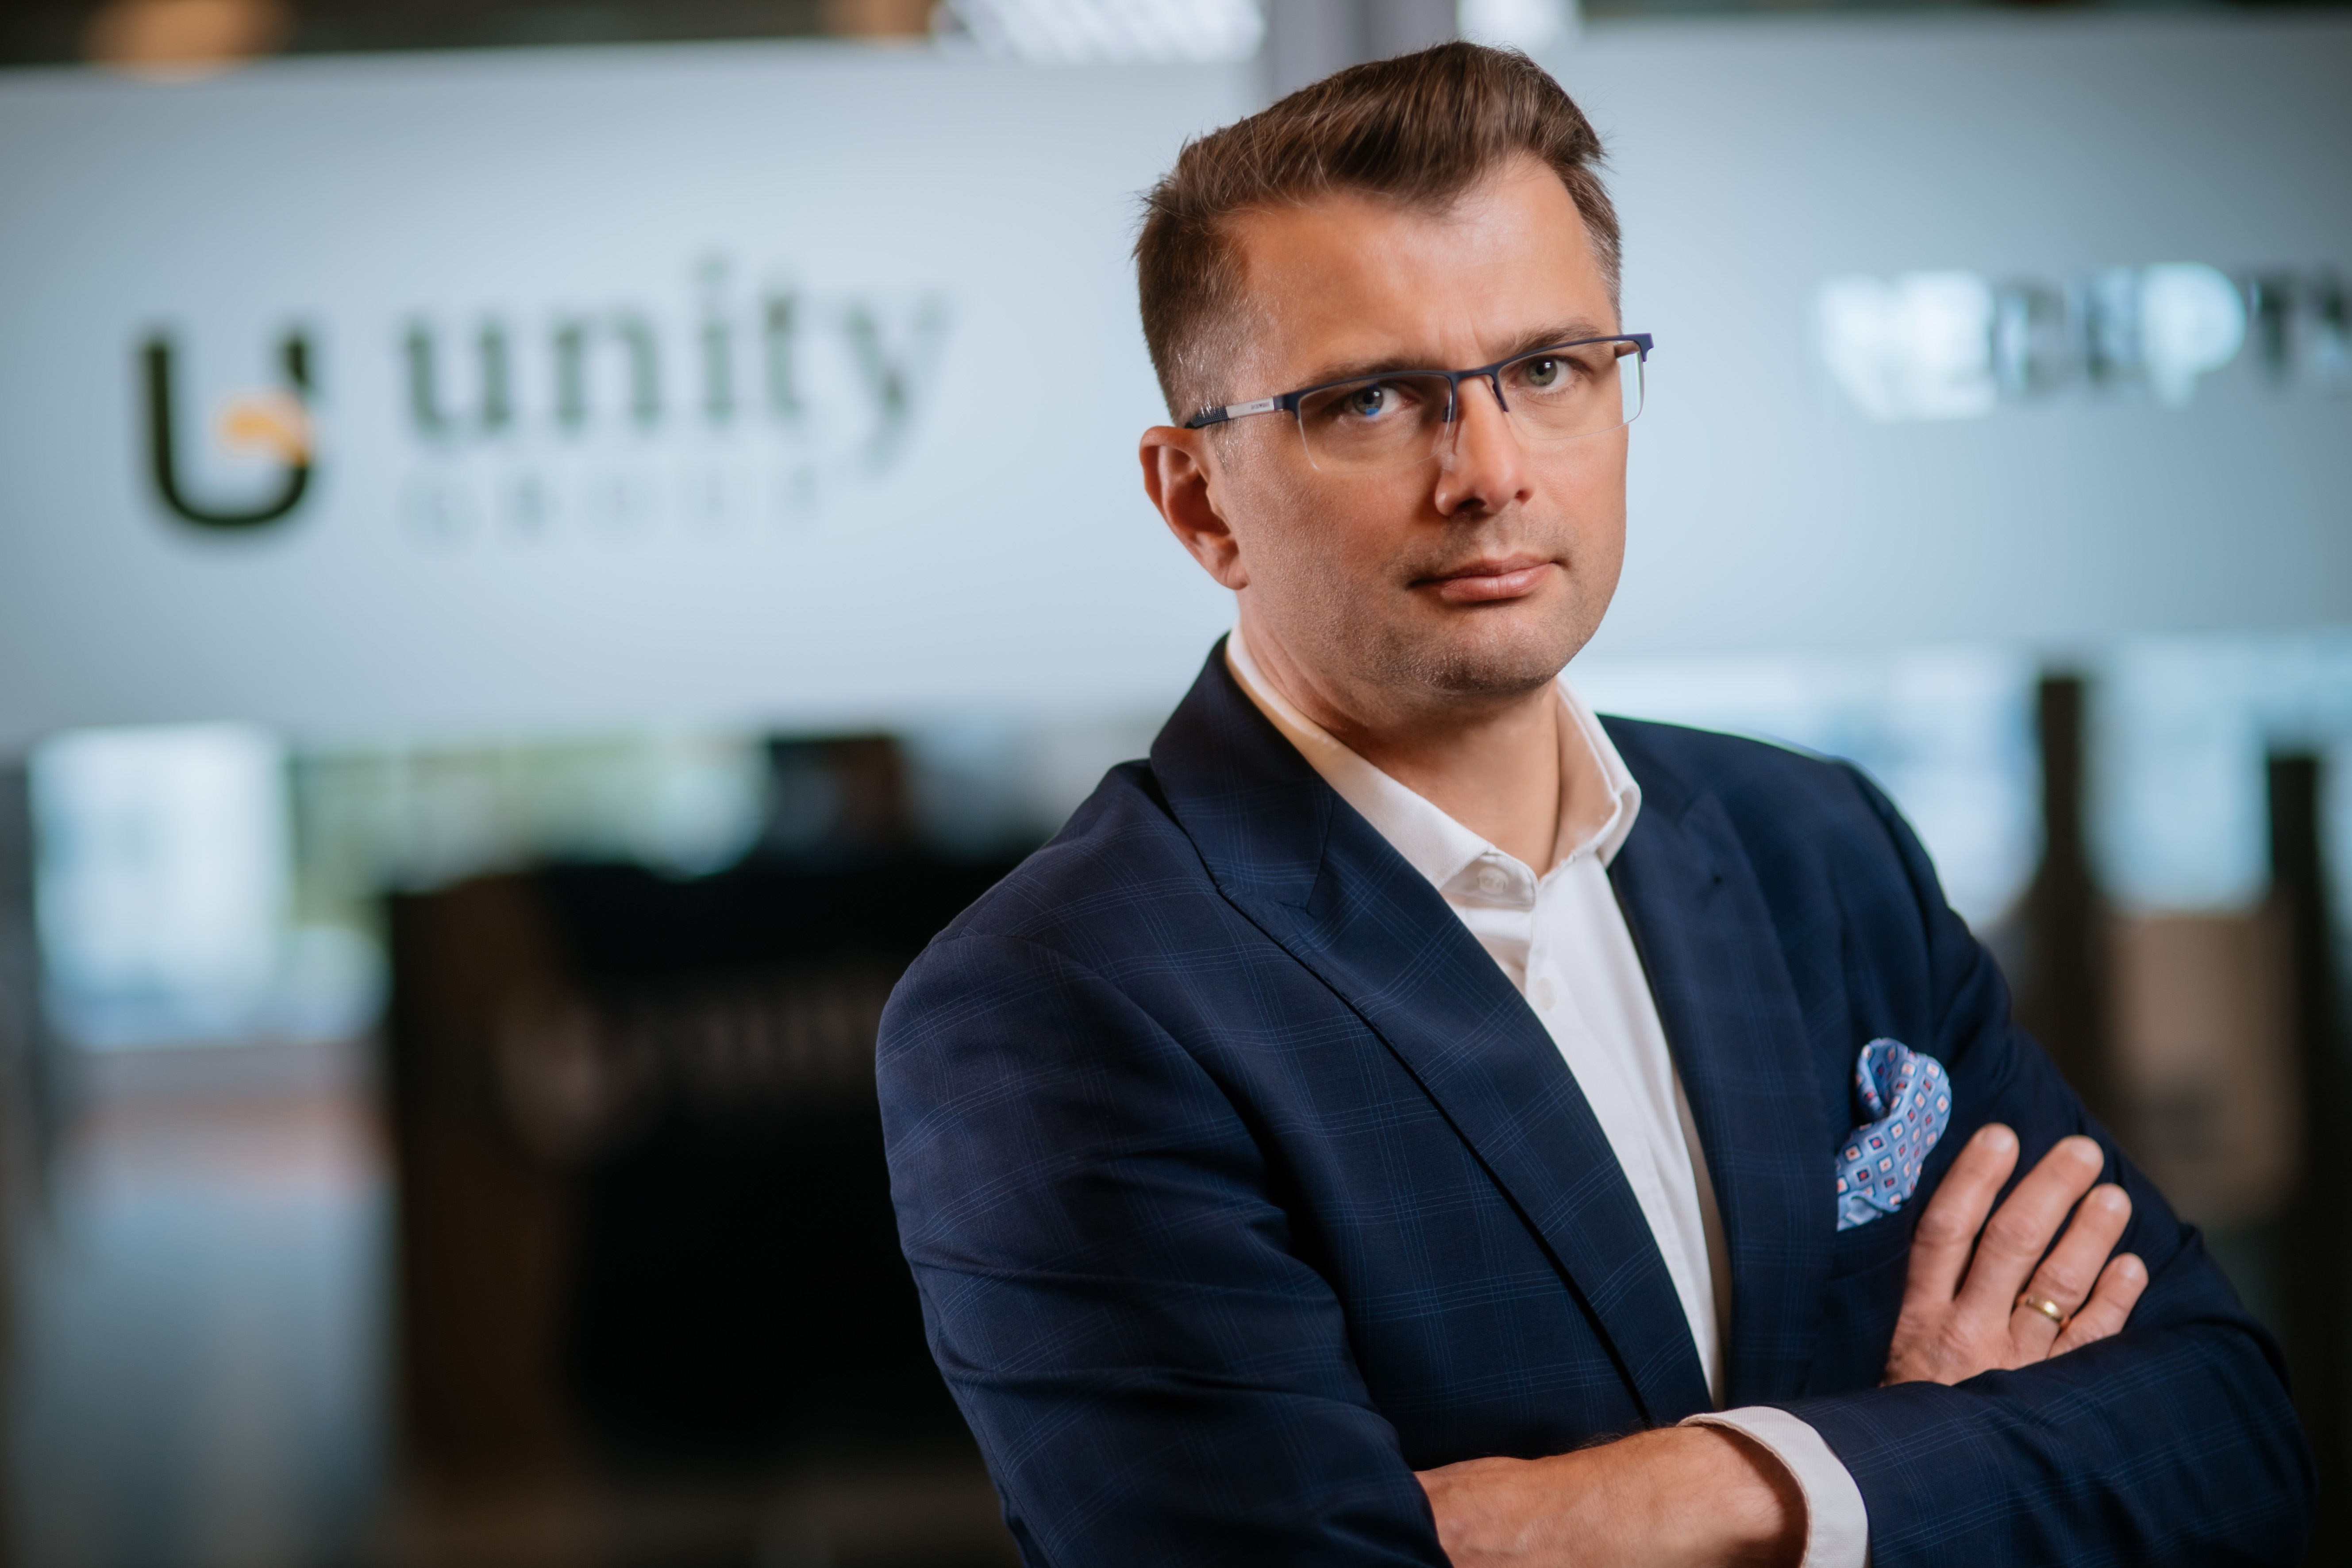 Piotr Wrzalik, Unity Group